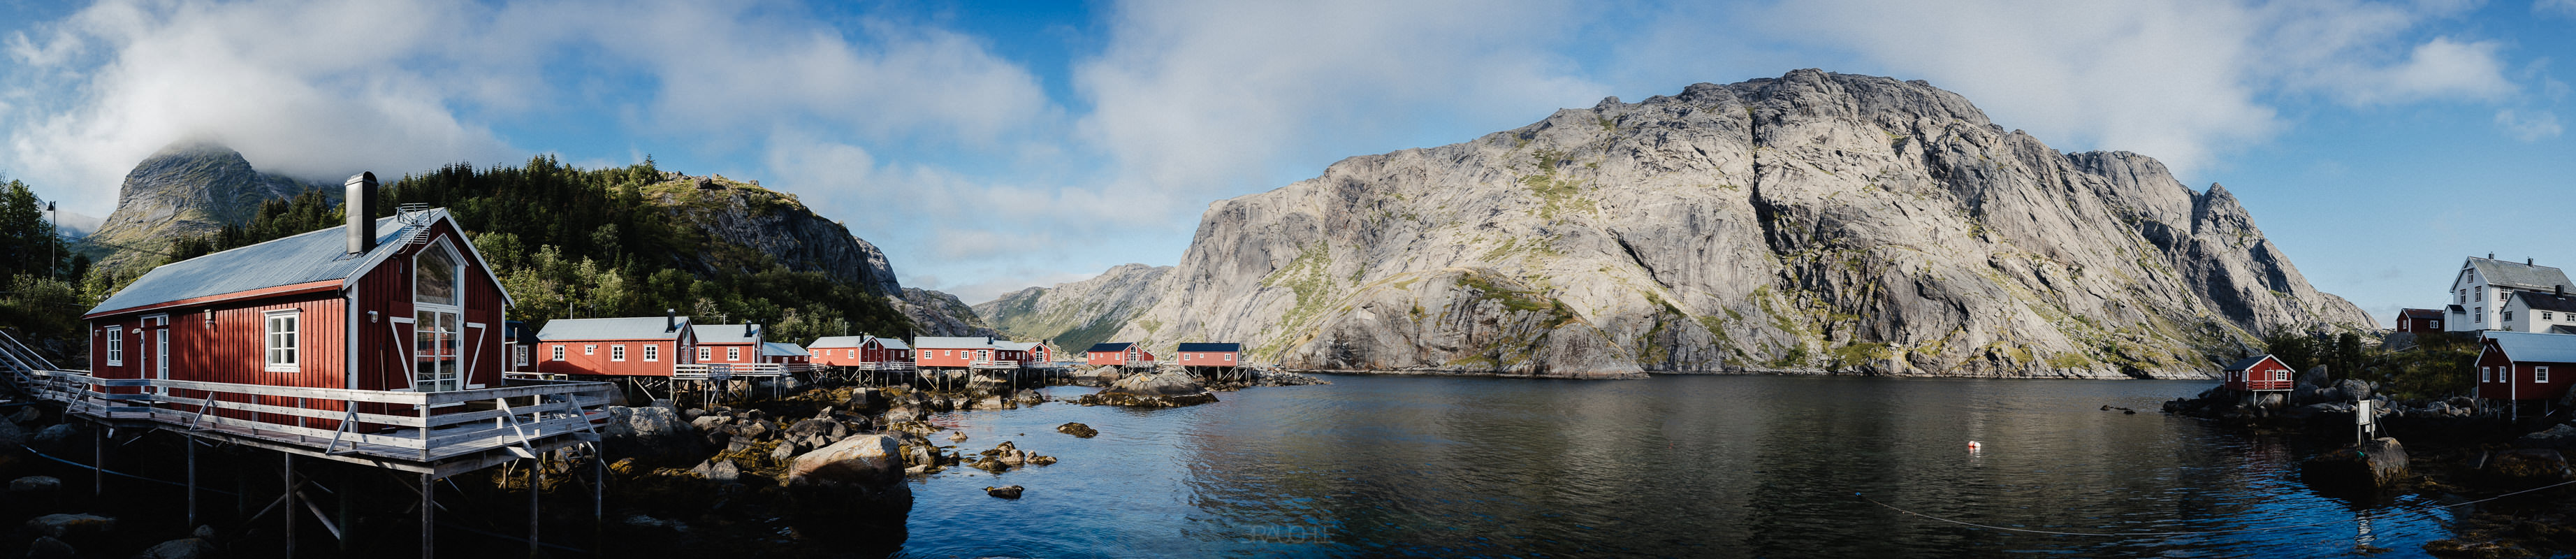 norway-lofoten-reine-roadtrip-20